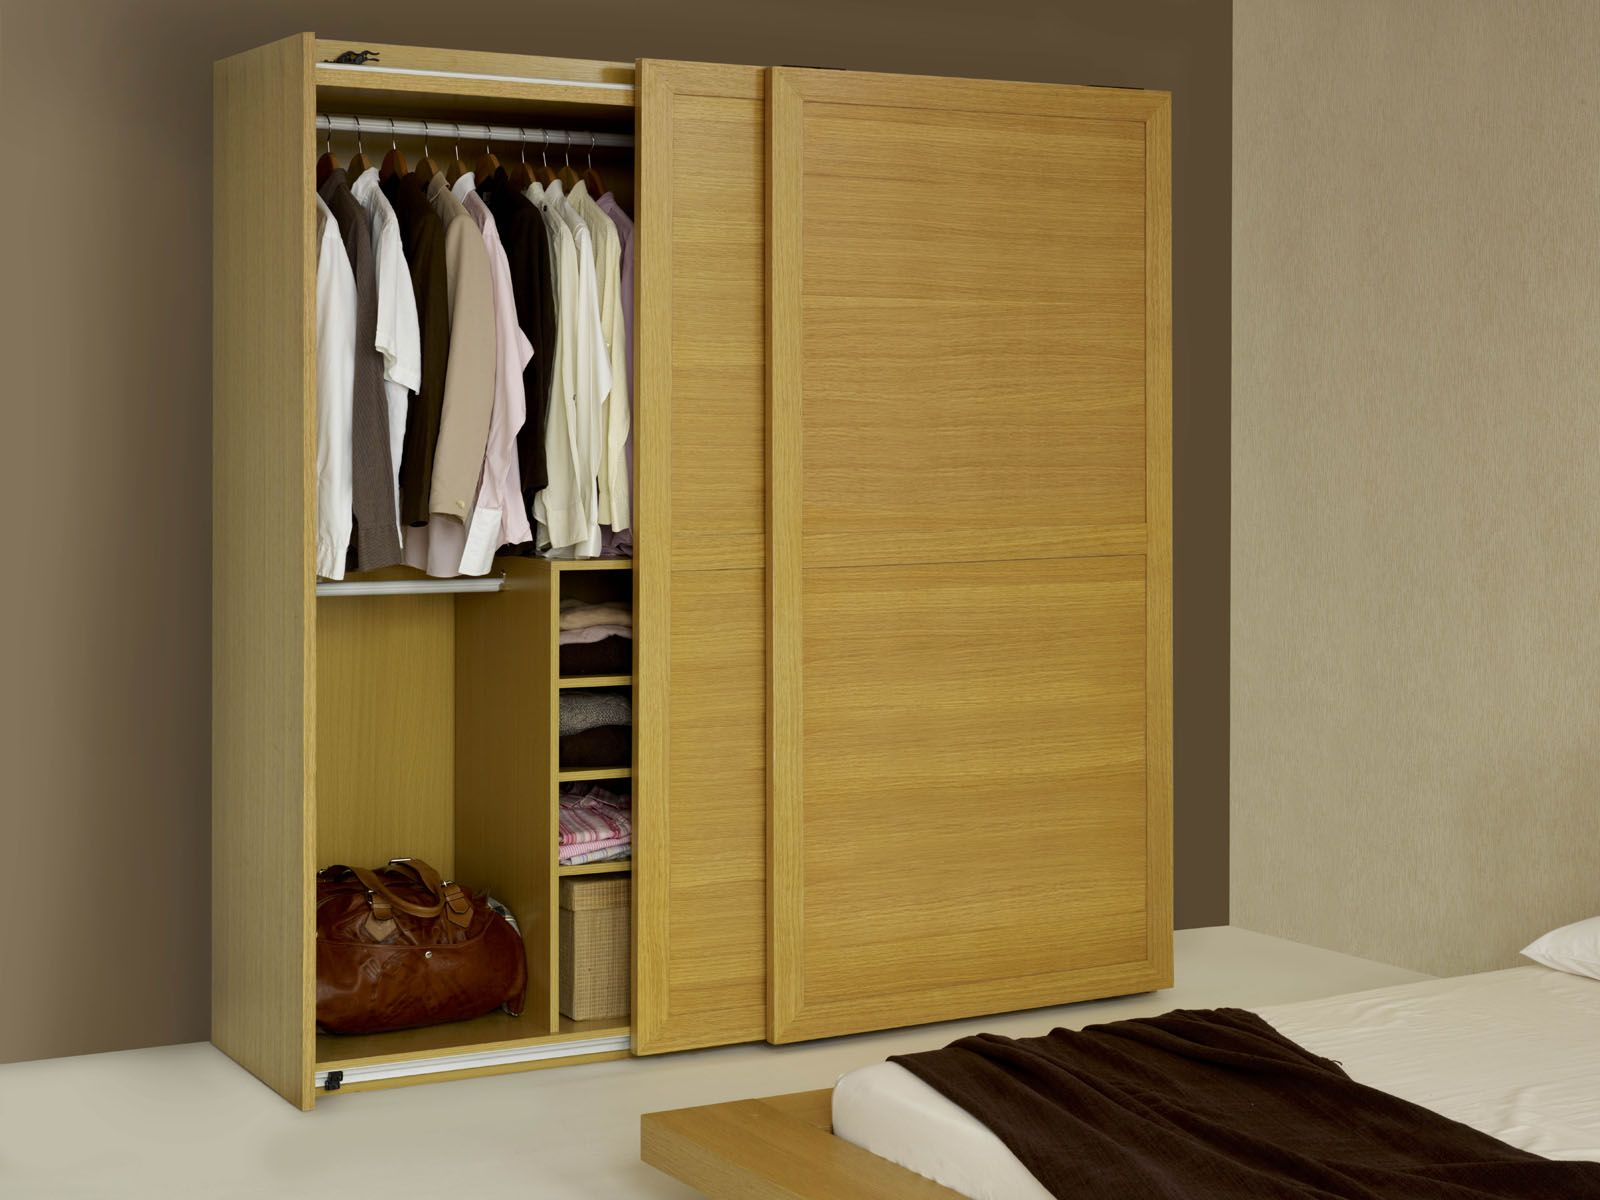 of fabric bedrooms wardrobe to full for room with mirror wooden size divider high sliding panel how ideas mirrored prices doors ikea cover closet gloss door lowes